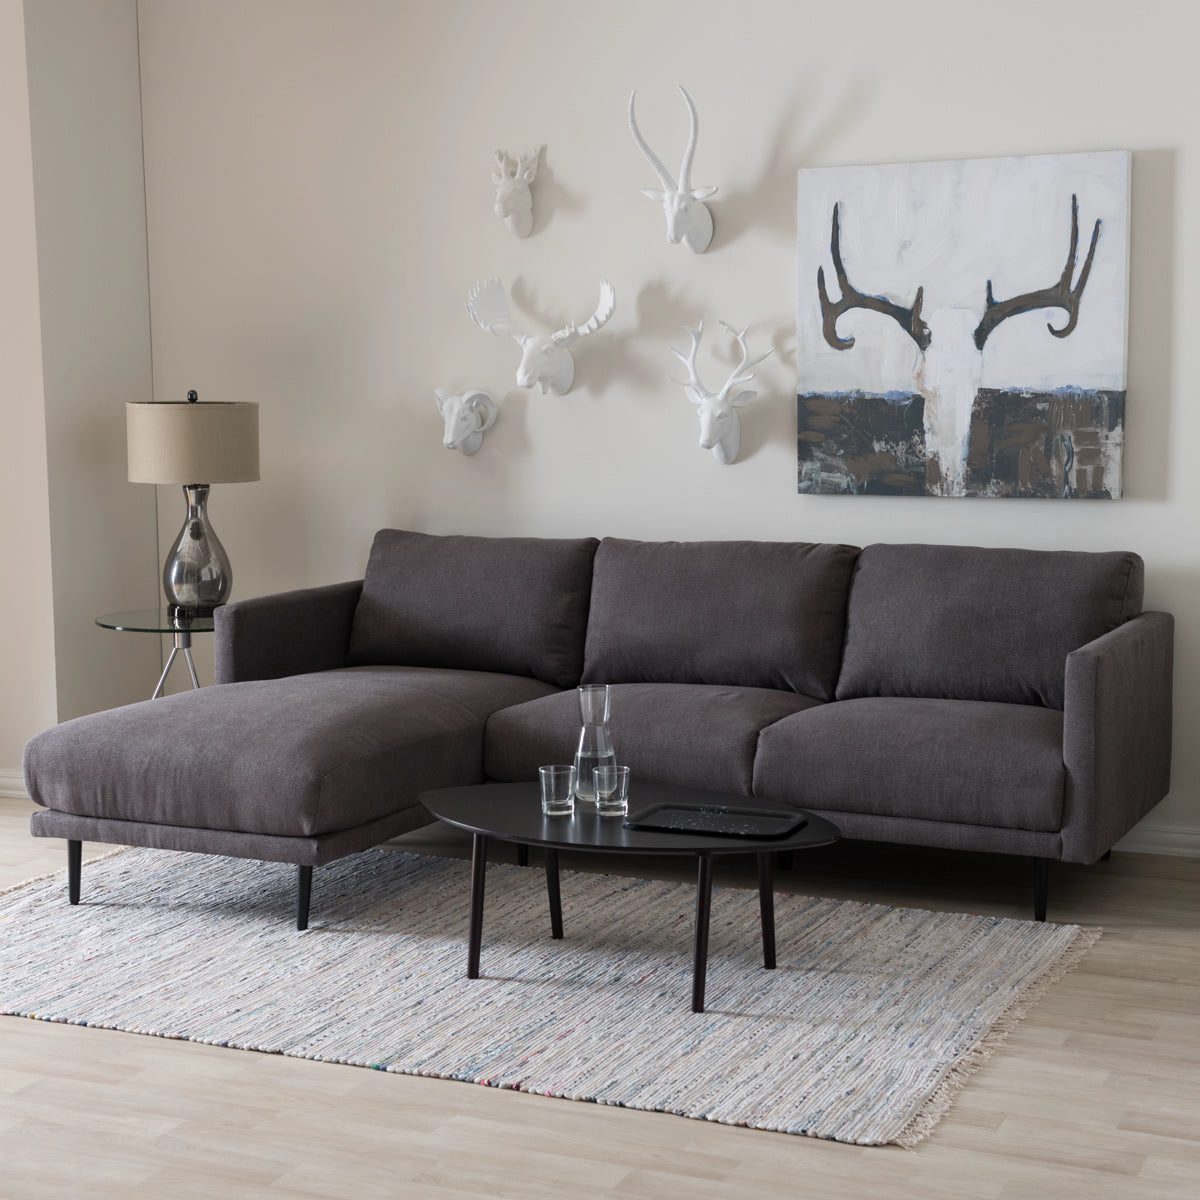 Baxton Studio Riley Retro Mid-Century Modern Grey Fabric Upholstered Left Facing Chaise Sectional Sofa Baxton Studio-sectionals-Minimal And Modern - 1